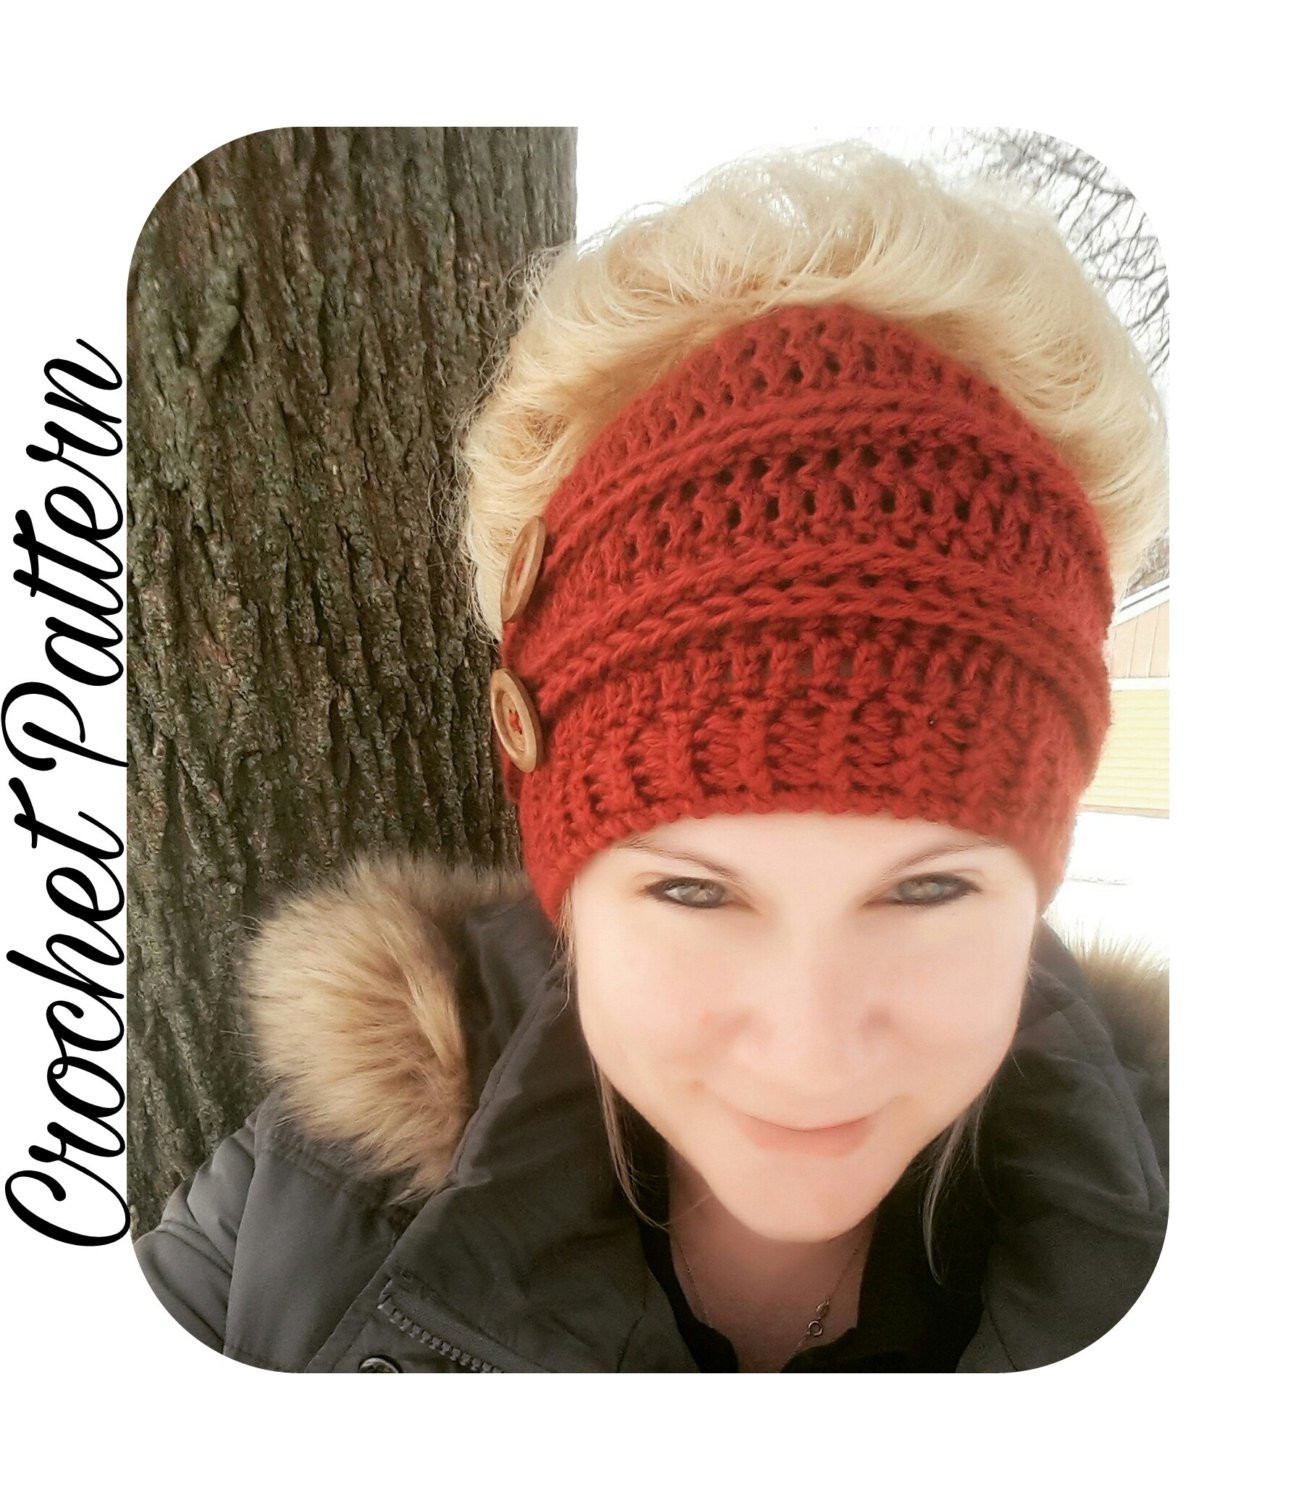 Messy Bun Hat Crochet Pattern Awesome Crochet Pattern Messy Bun Beanie Crochet Pattern Bun Hat Of Amazing 47 Images Messy Bun Hat Crochet Pattern